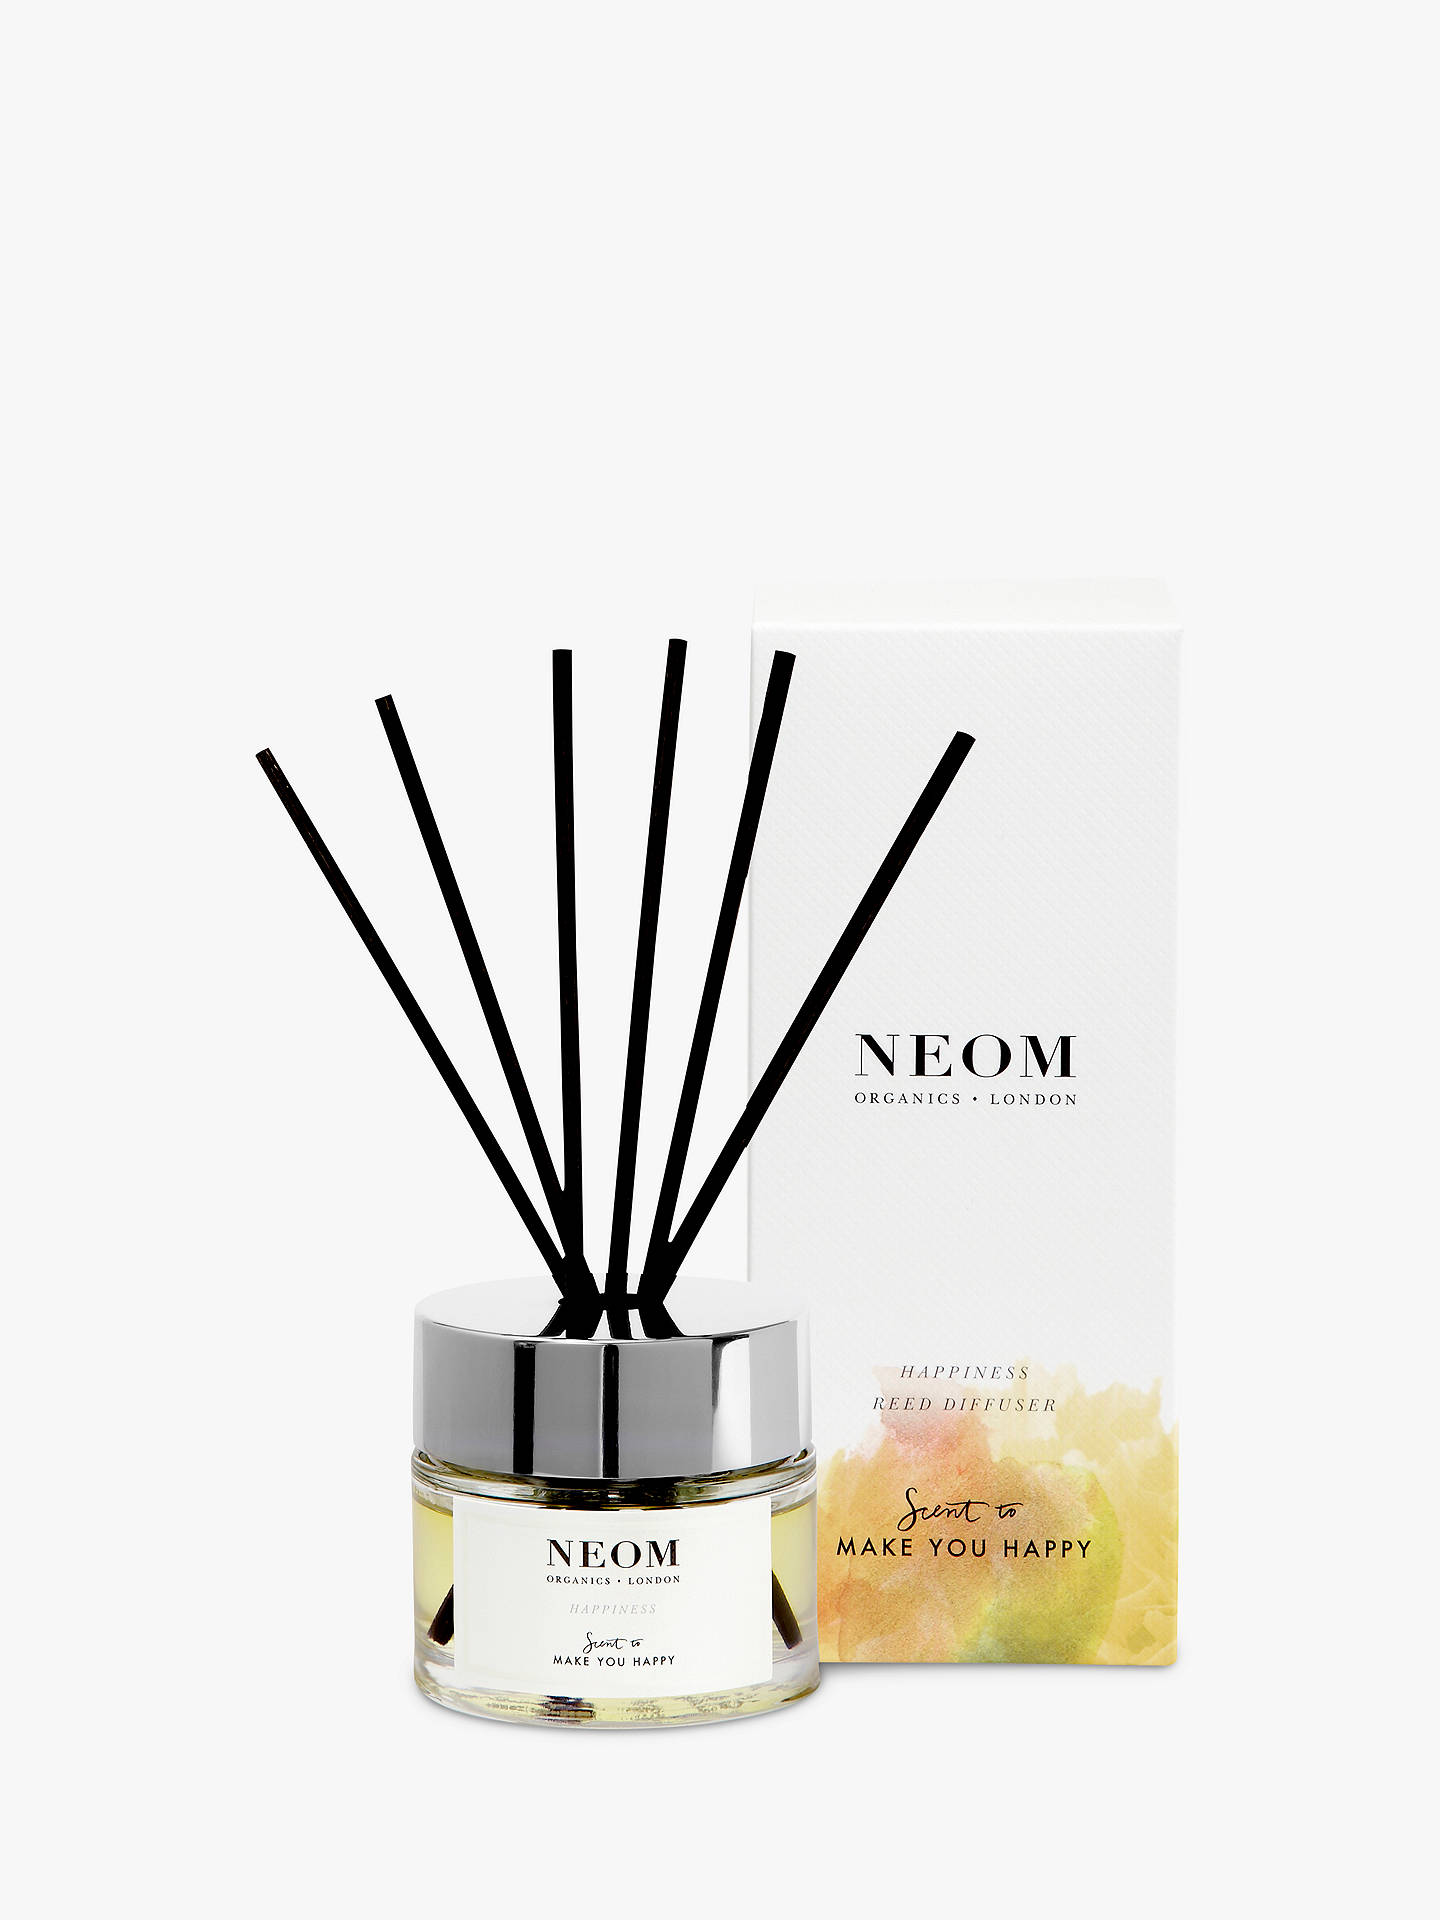 Buy Neom Organics London Happiness Reed Diffuser, 100ml Online at johnlewis.com